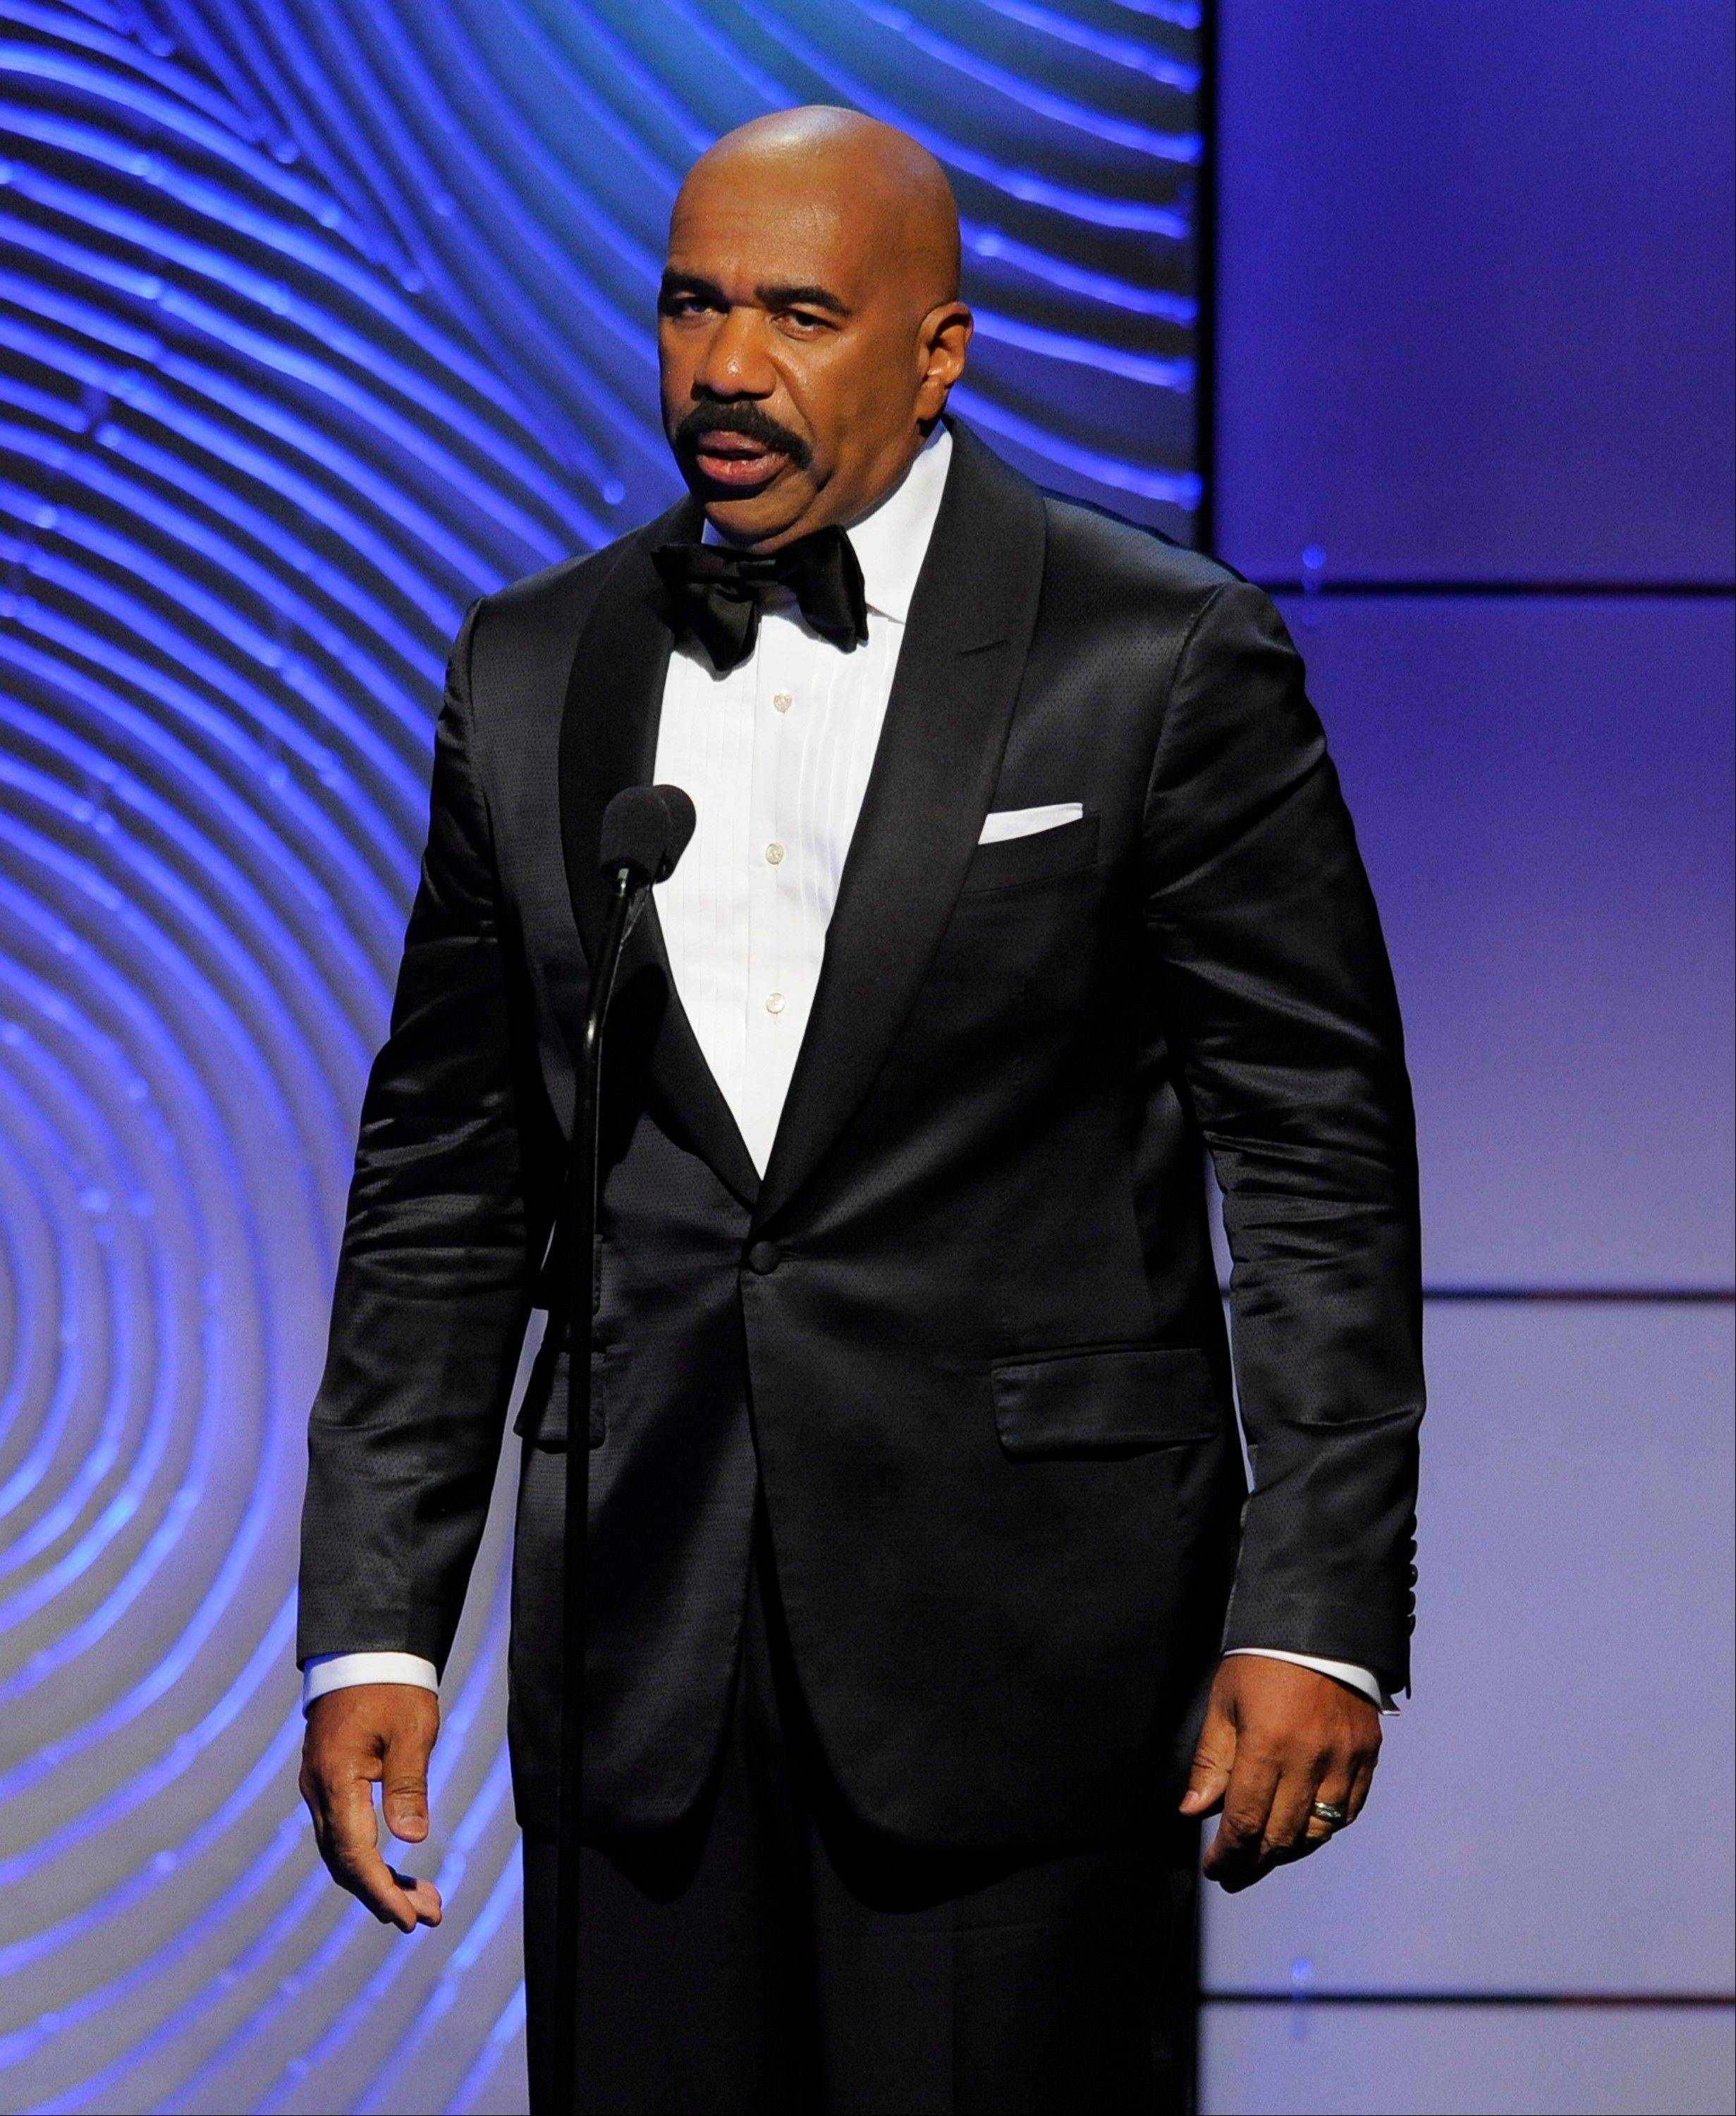 Steve Harvey speaks on stage at the 40th Annual Daytime Emmy Awards on Sunday, June 16, 2013, in Beverly Hills, Calif.